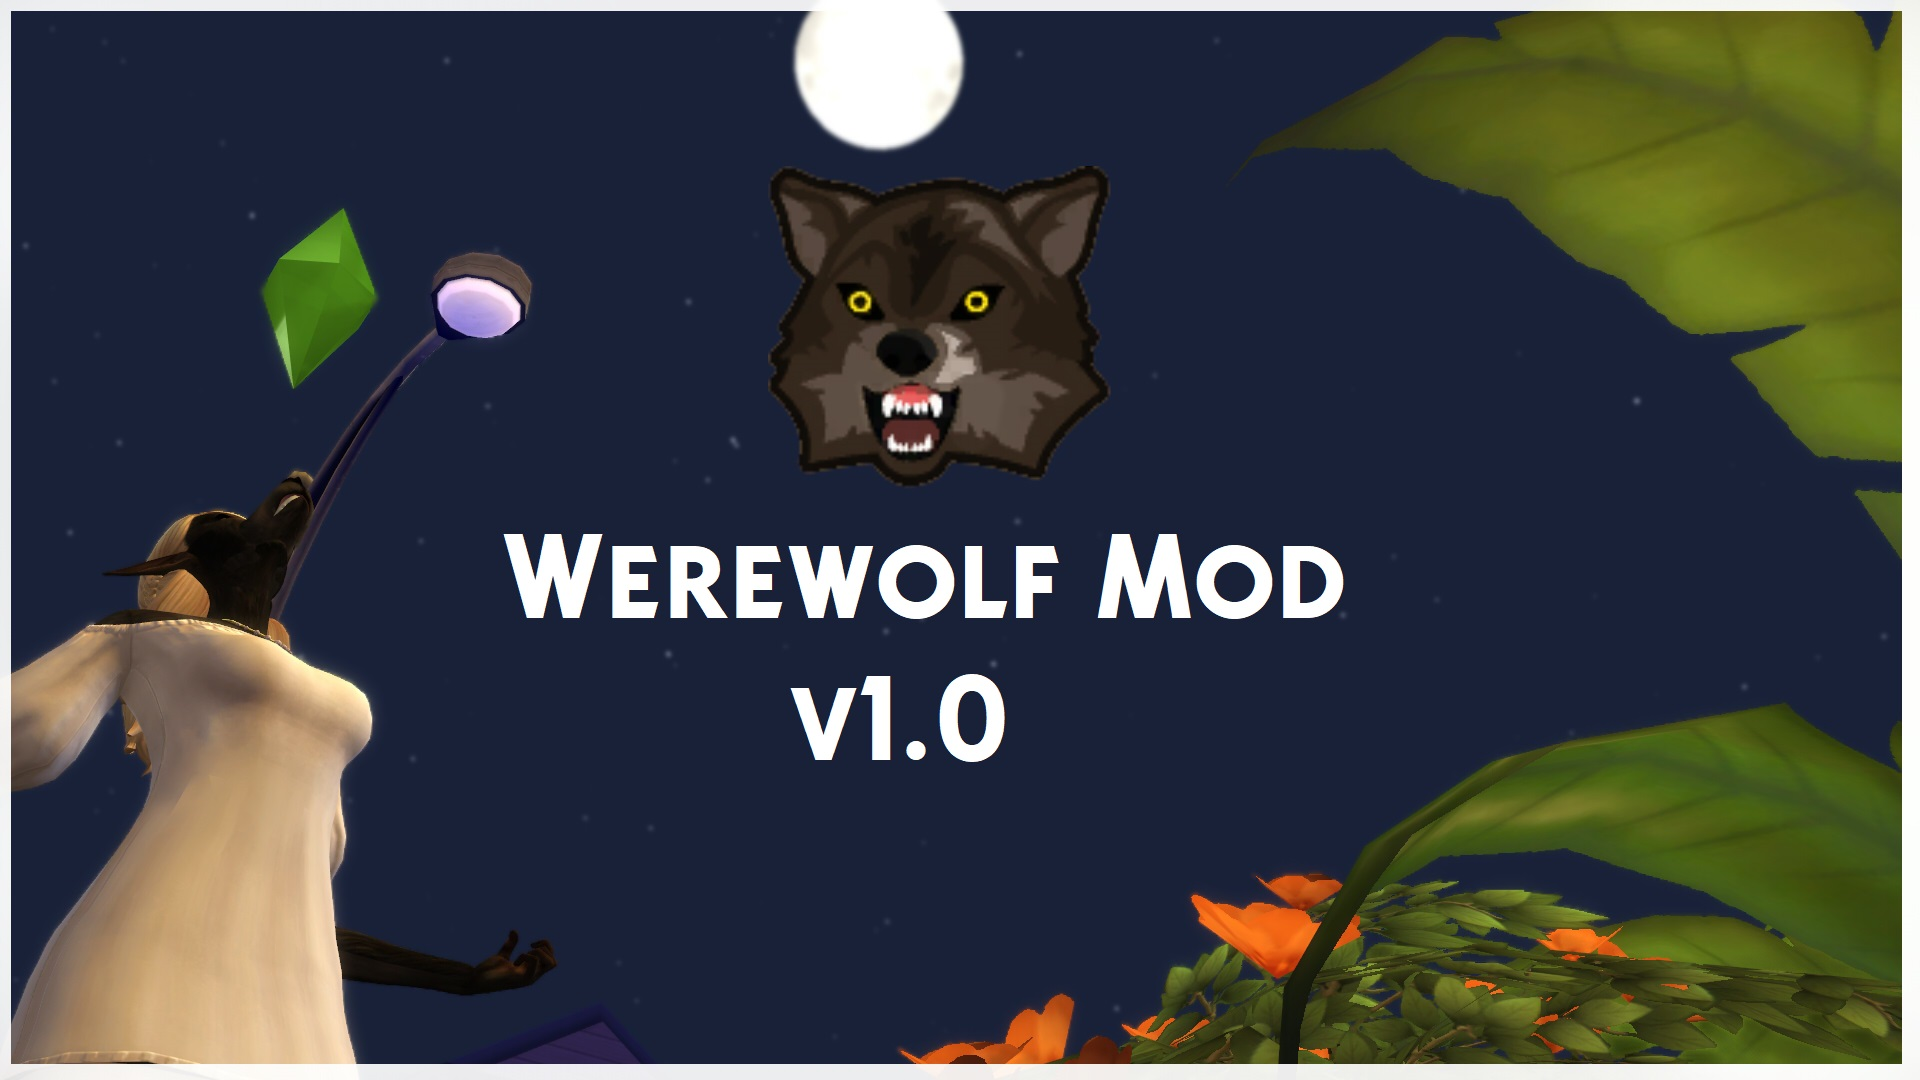 Mod The Sims - Werewolf Mod V1 1 [KINDA WORKS] Read description!